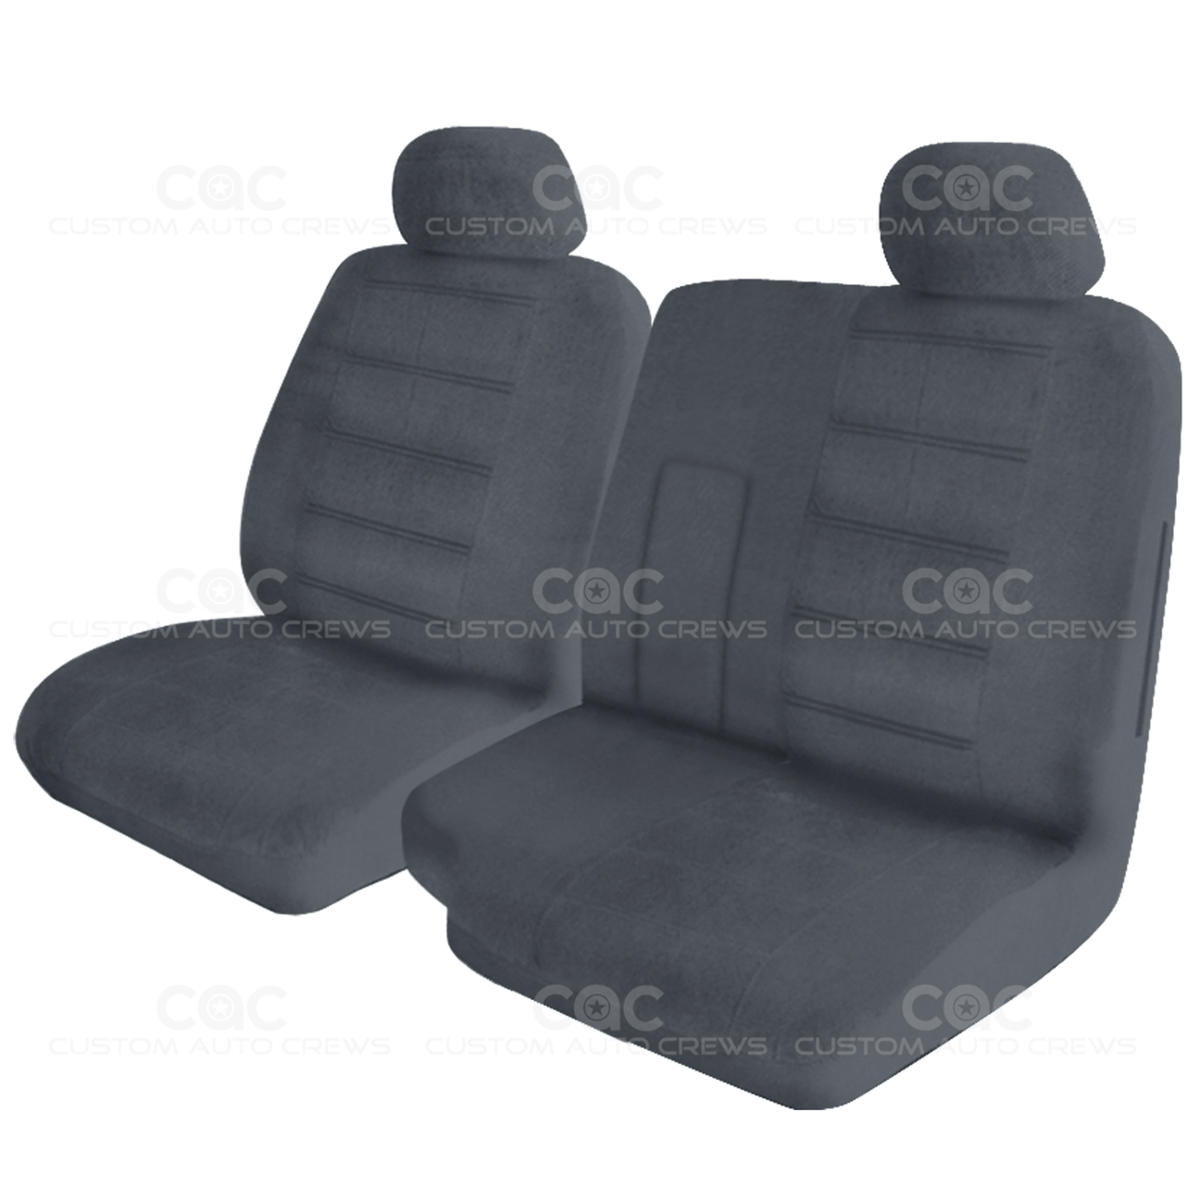 Very Impressive portraiture of Details about Pickup 60/40 Split Bench Premium Regal Custom Seat Cover  with #41454E color and 1200x1200 pixels